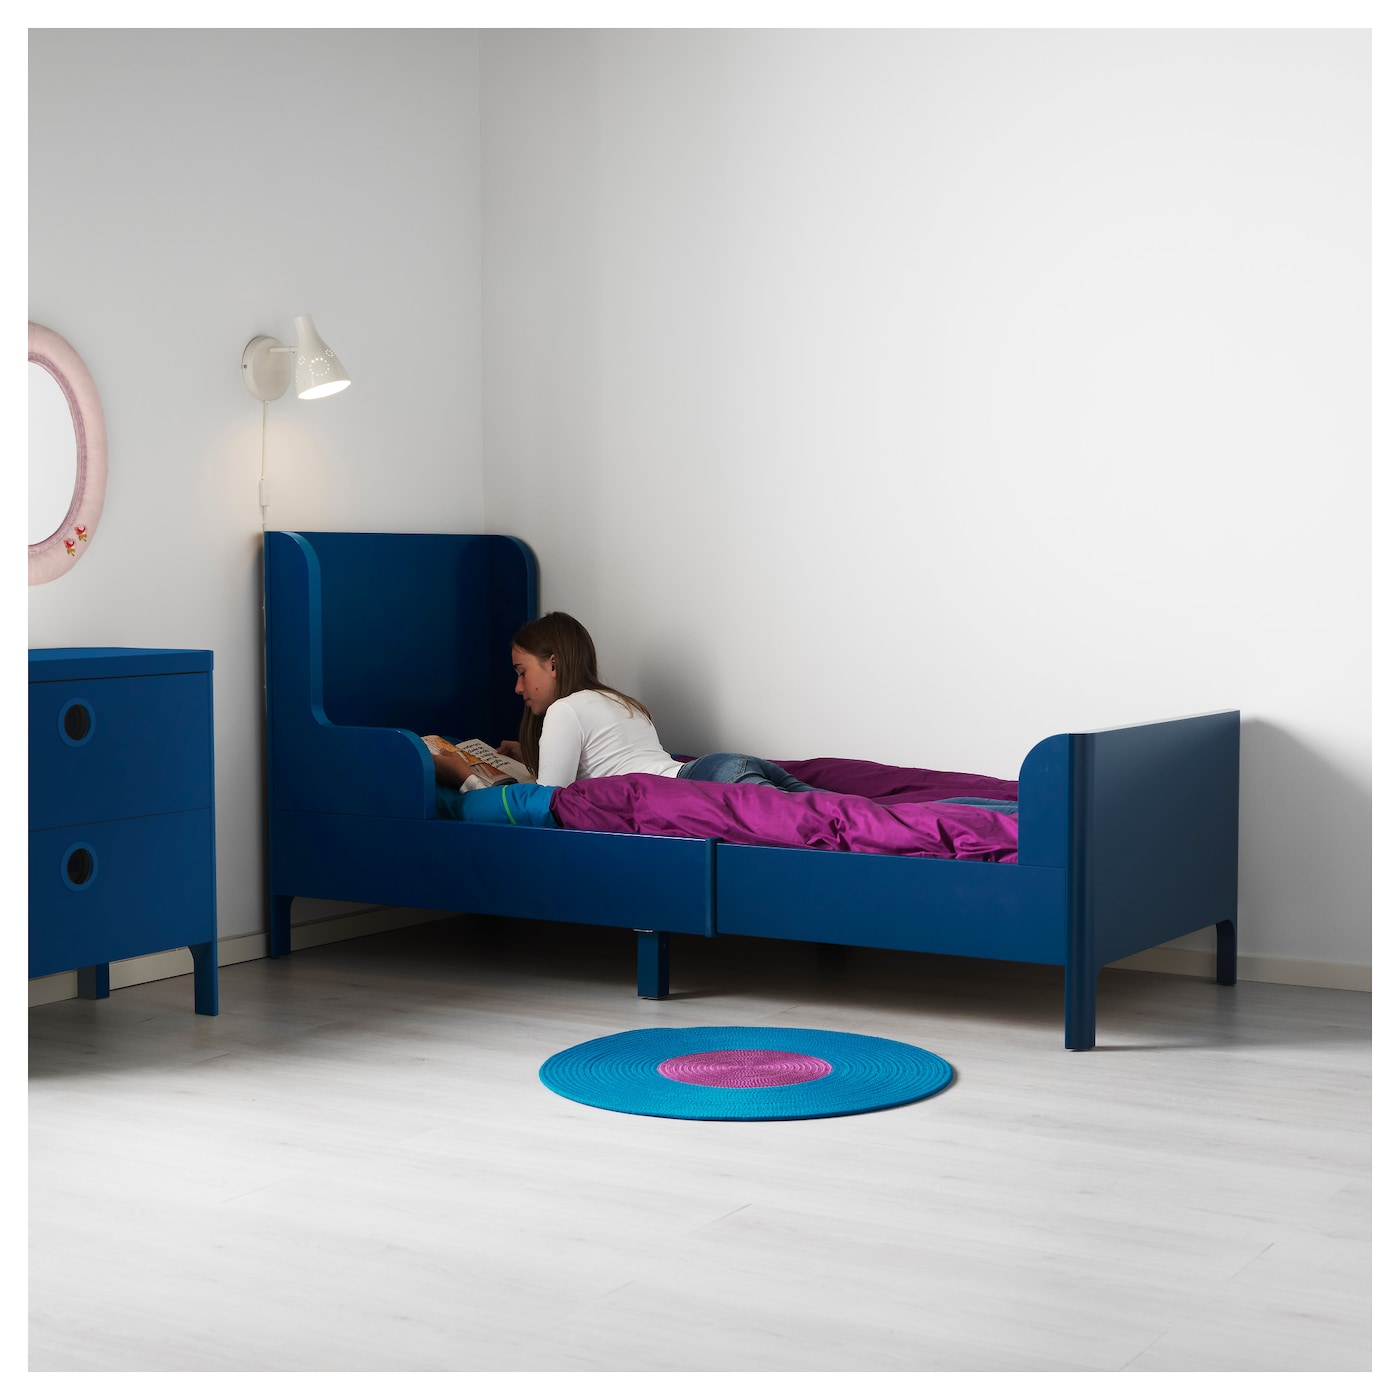 IKEA BUSUNGE extendable bed Extendable, so it can be pulled out as your child grows.